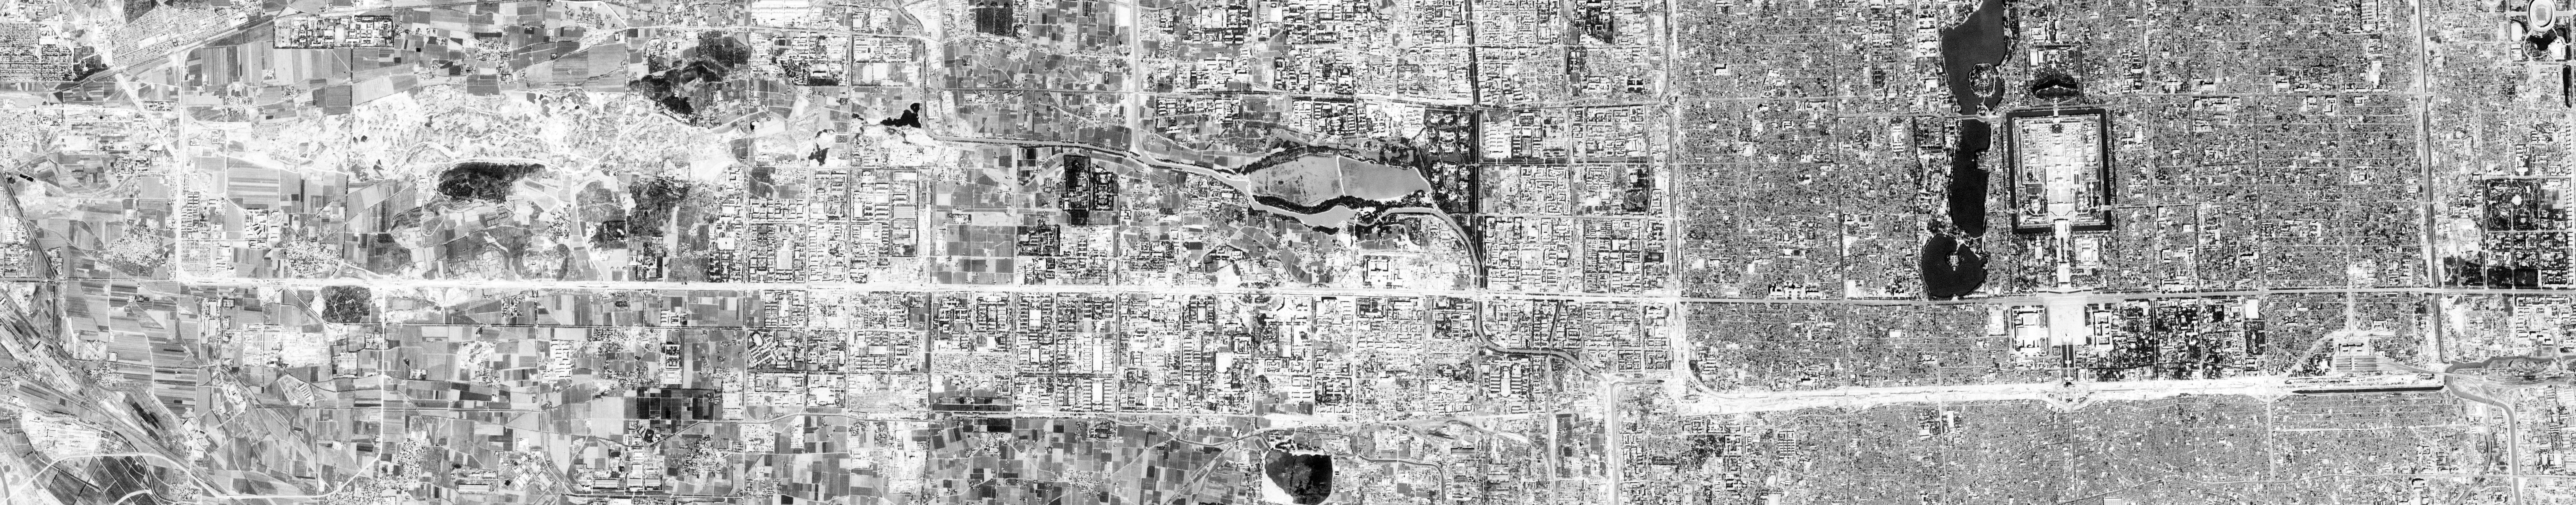 Beijing Subway Wikipedia 1967 F 100 Wiring Diagram 240 Satellite Image Of The Construction Initial Line Shot By Us Spy Corona Kh 4b On 20 September